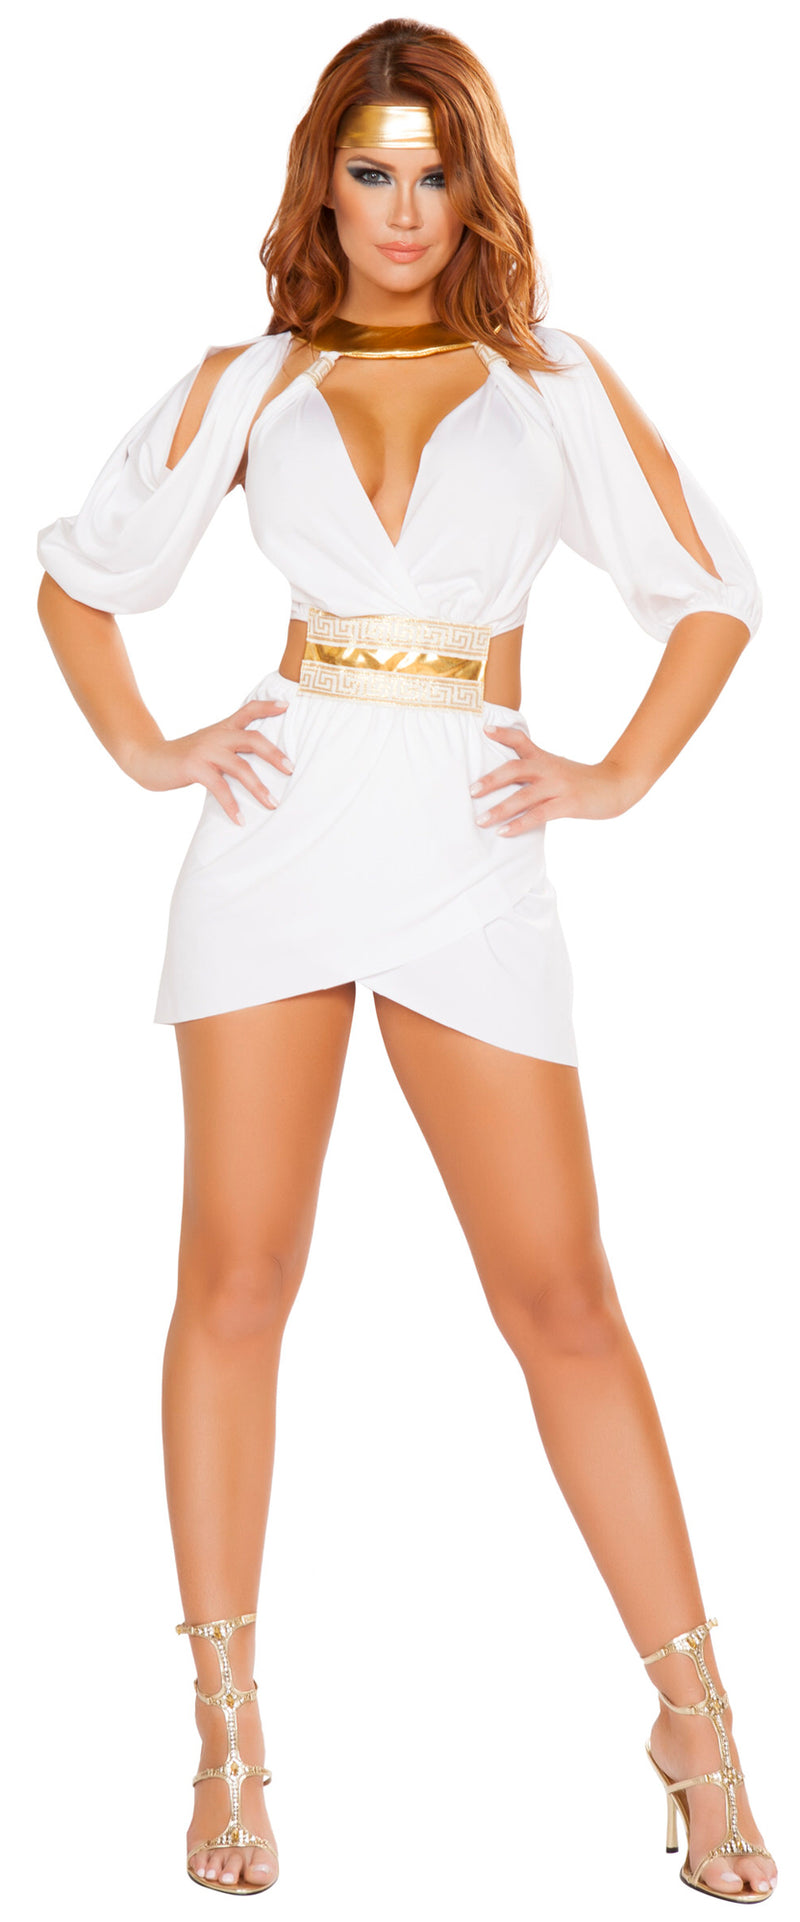 RM-4746 Goddess Aphrodite Costume front